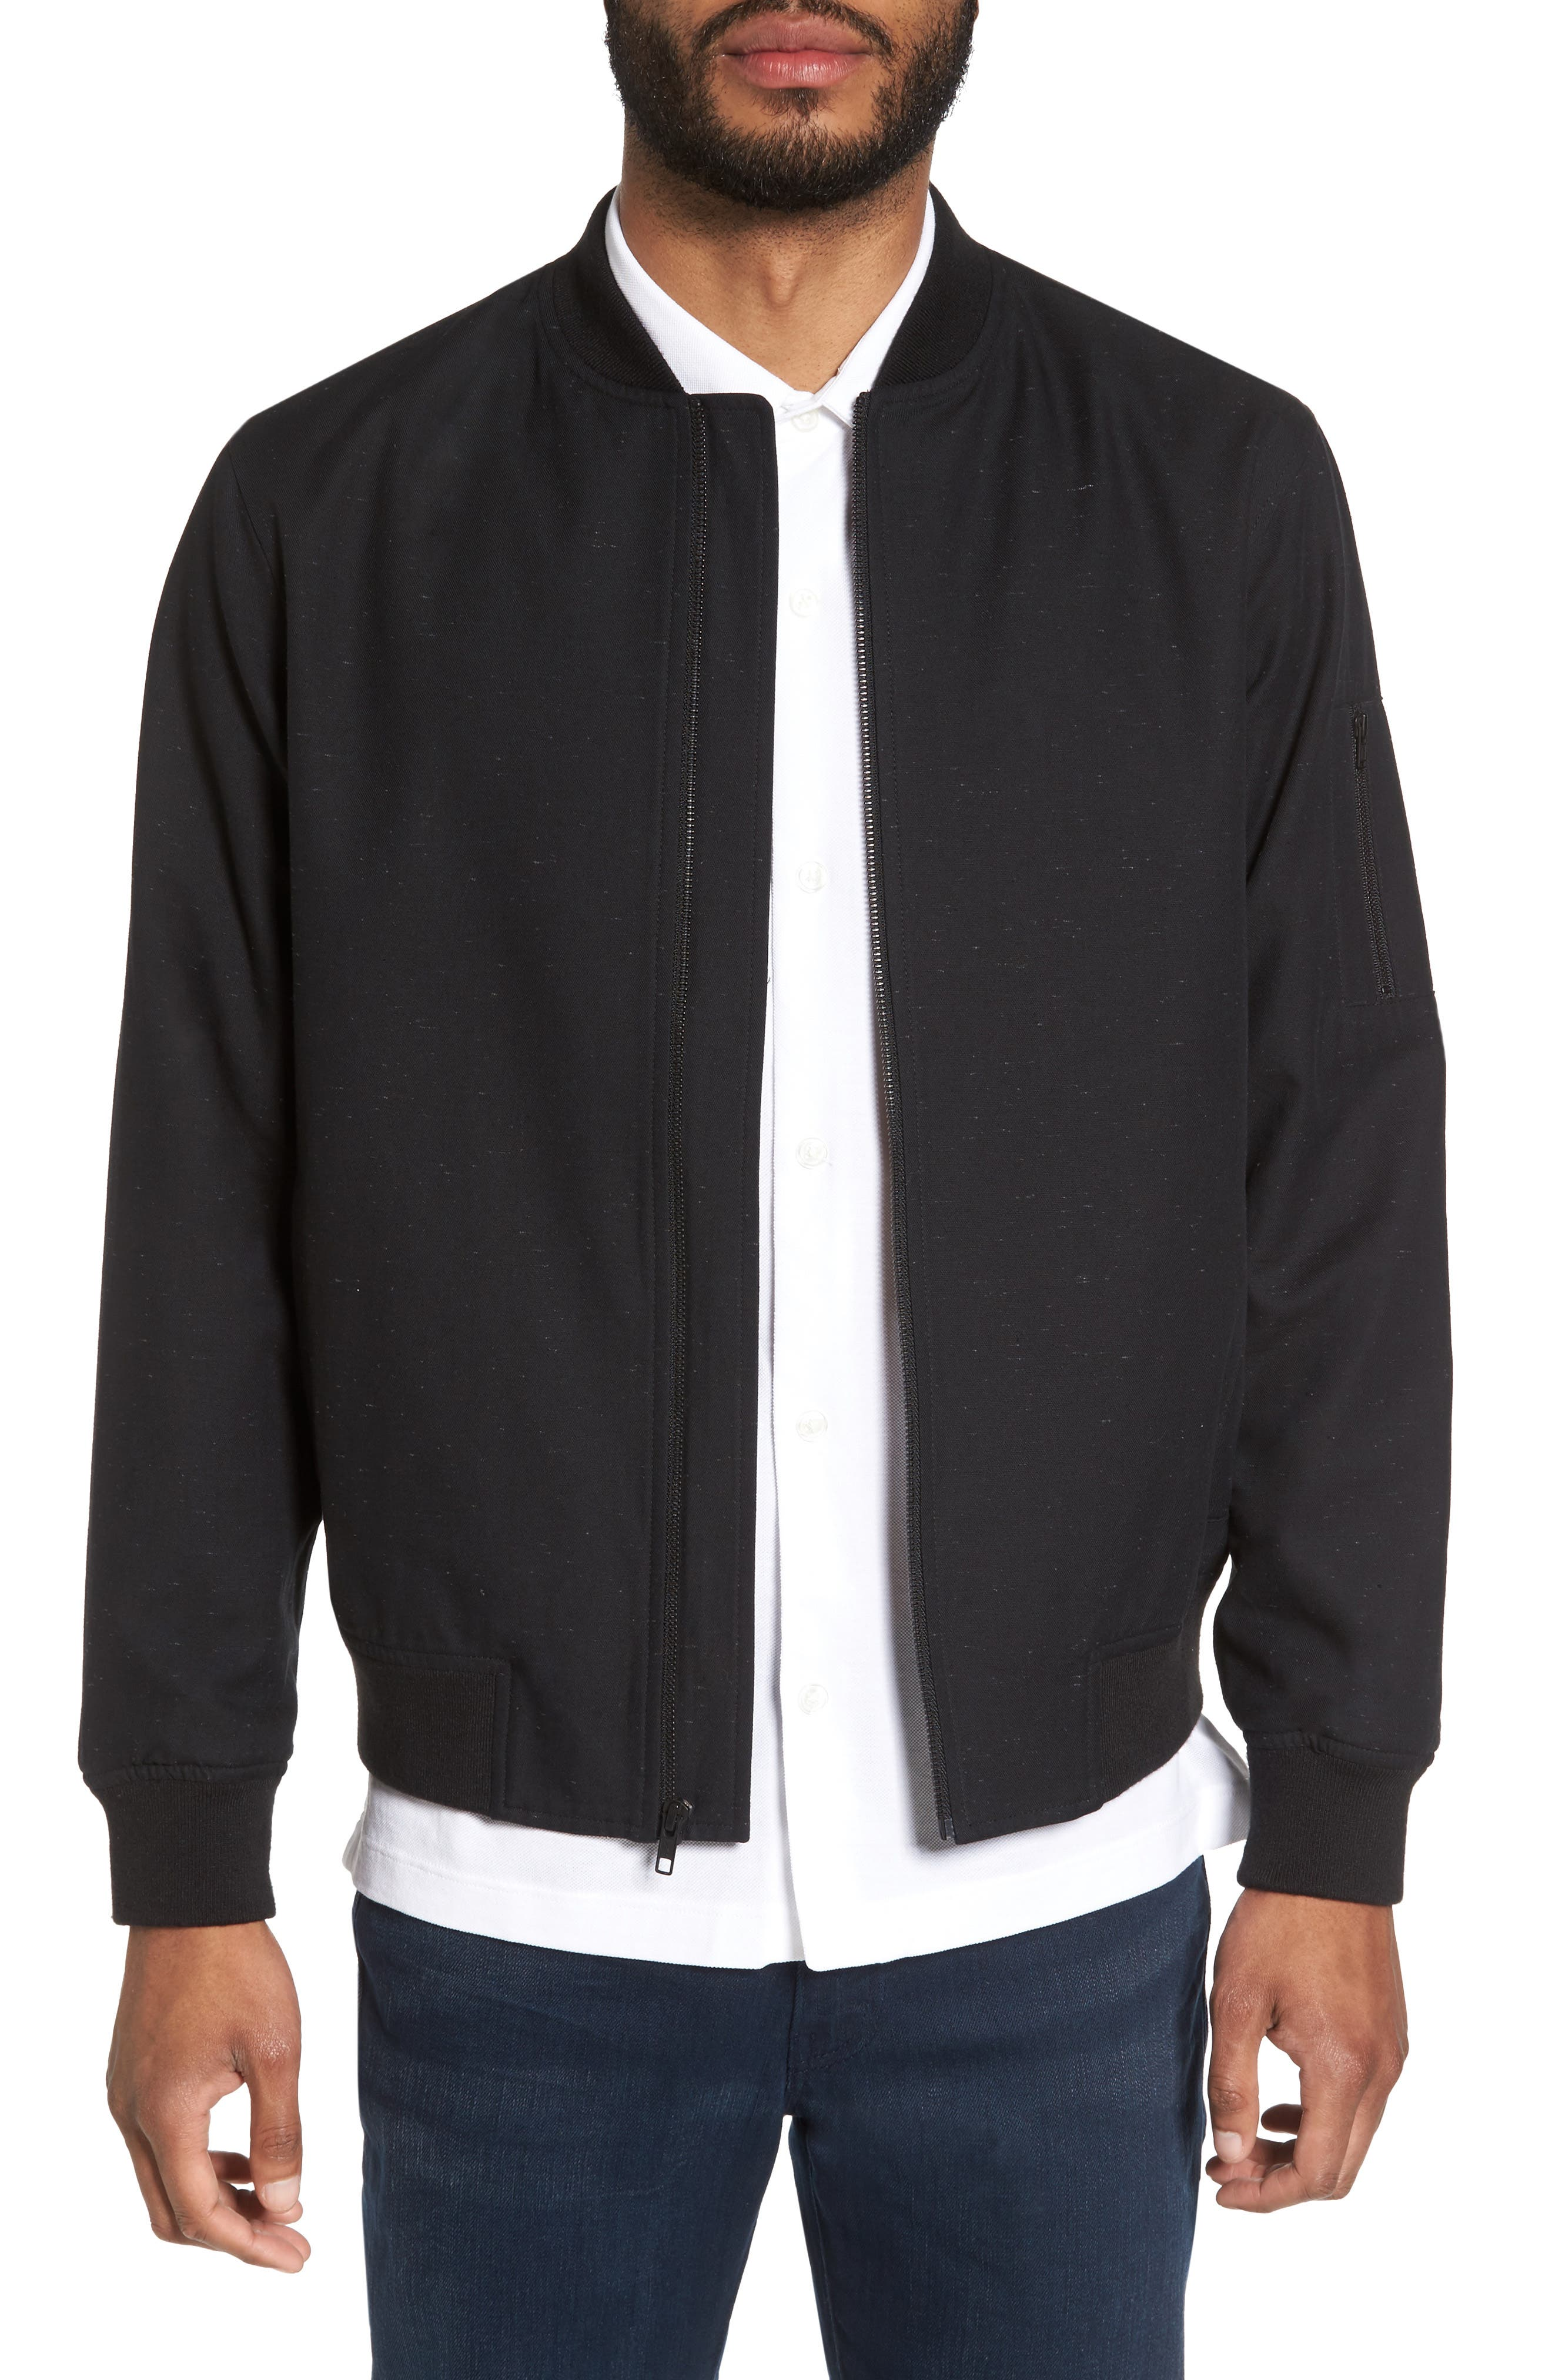 Calibrate Bomber Jacket